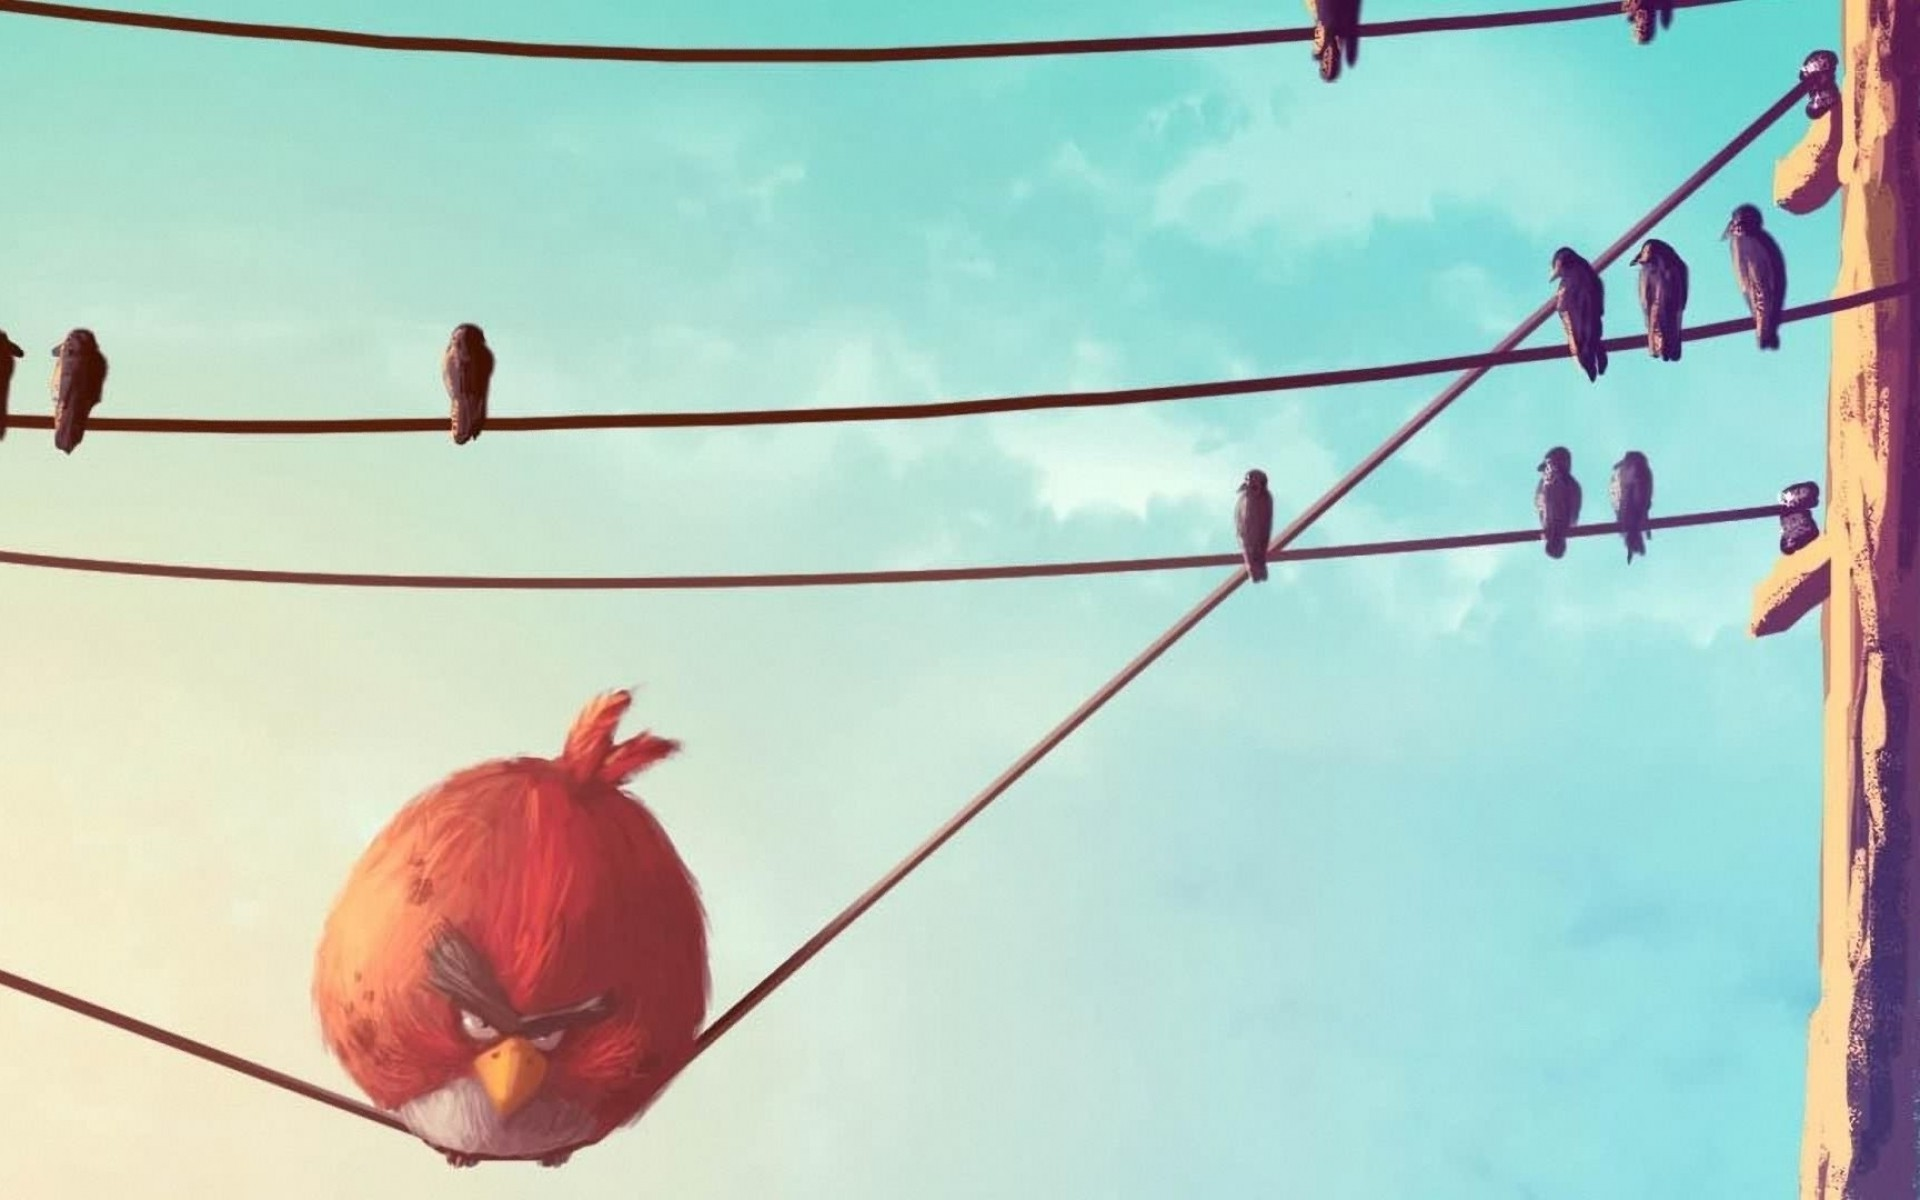 Red Angry Bird on the wire